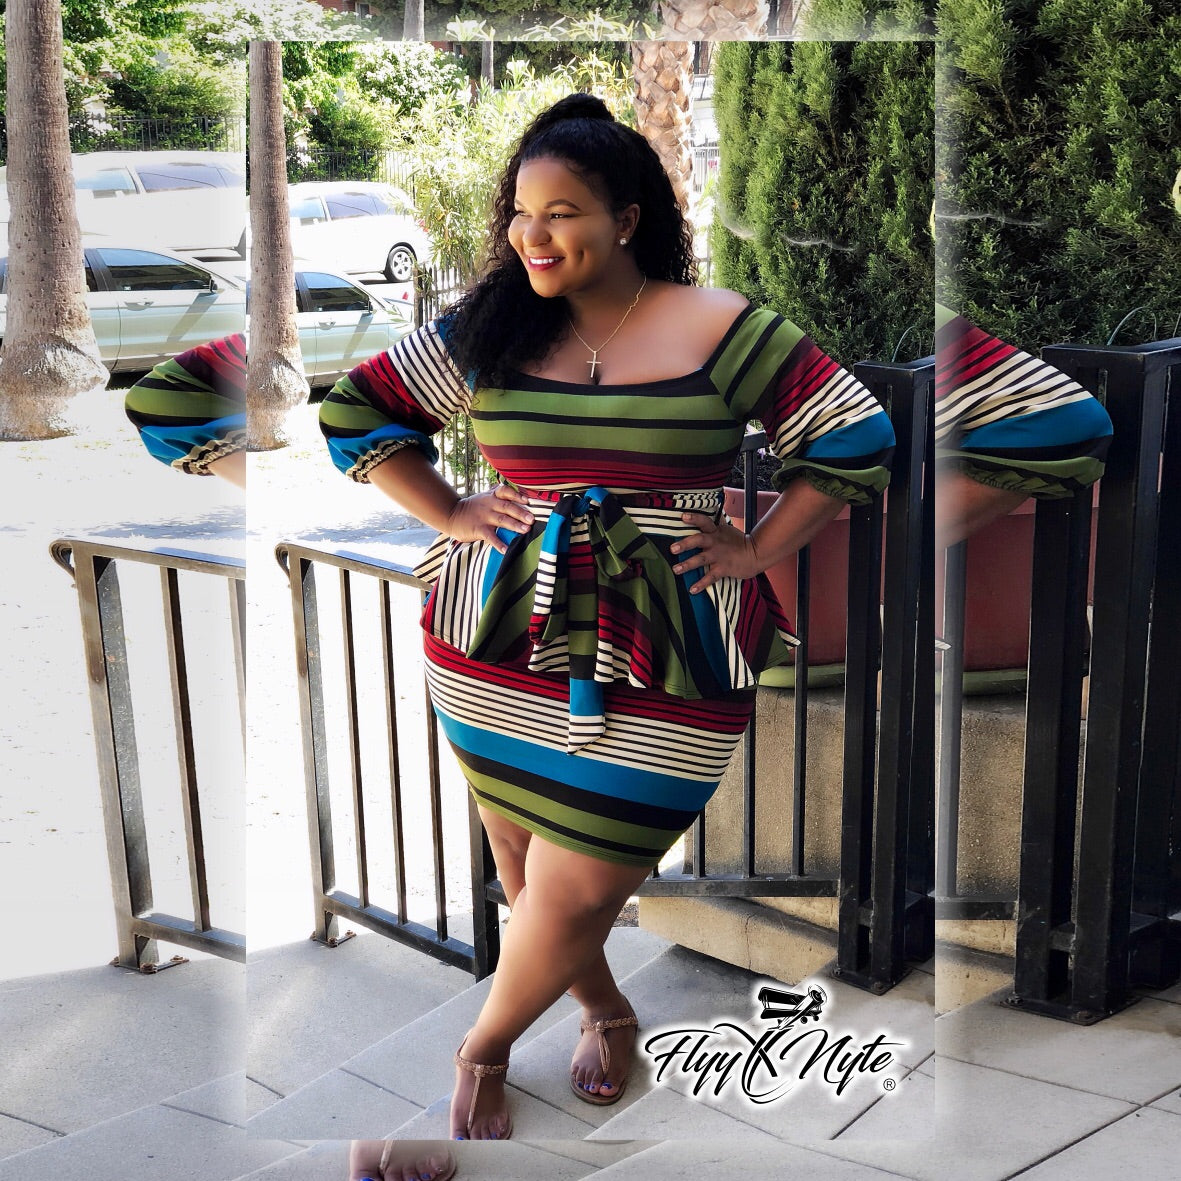 Women's Plus Size CURVESLAYER 3/4 Sleeve Teal Striped Peplum Dress with Front Tie - Flyy By Nyte